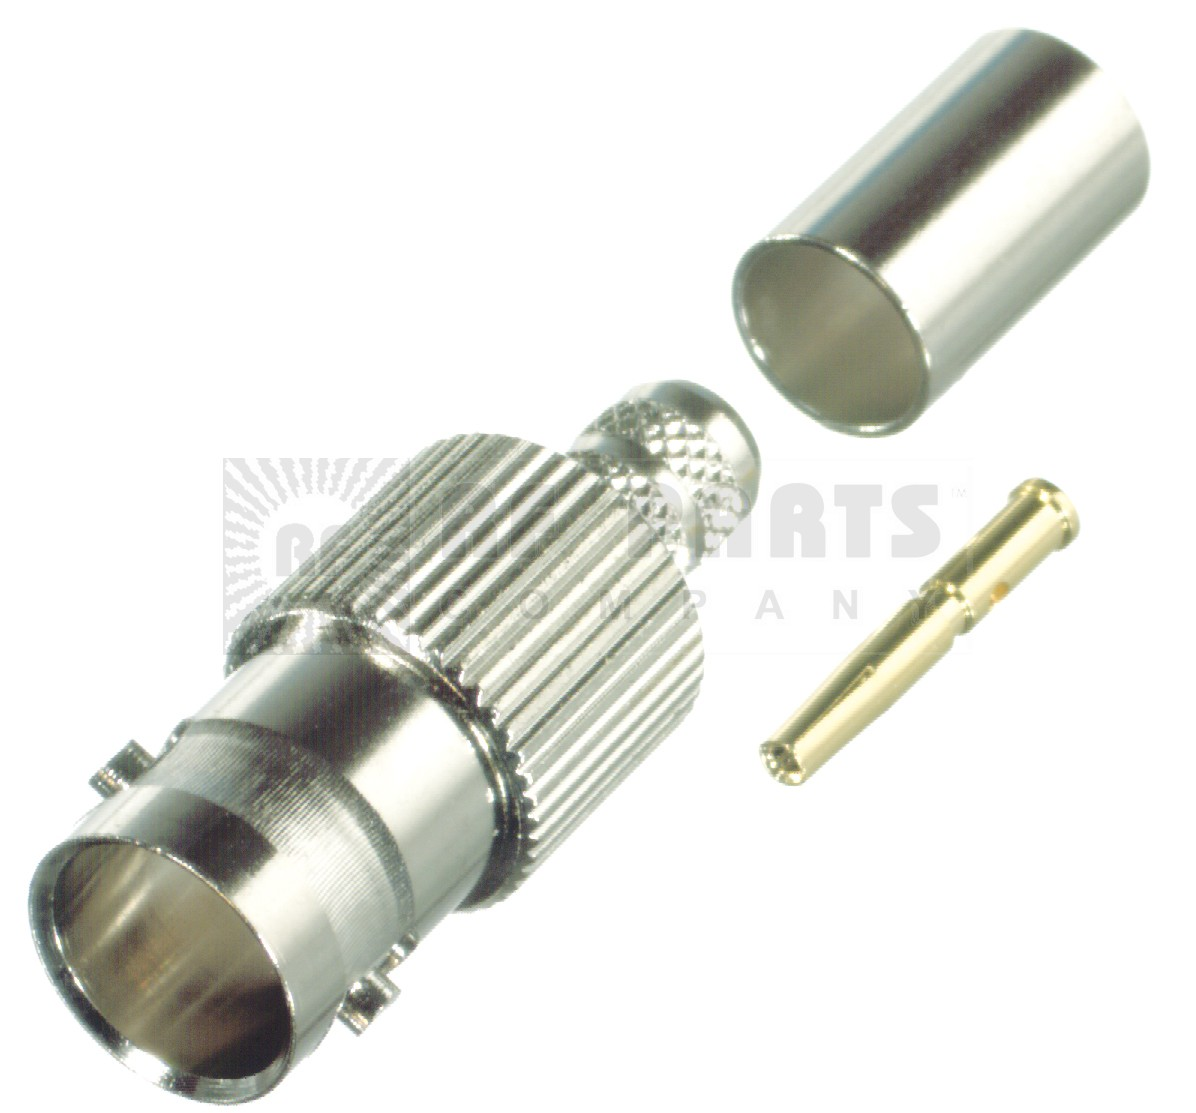 RFB1724-S Connector, BNC Female Crimp, 75 Ohm, RFI